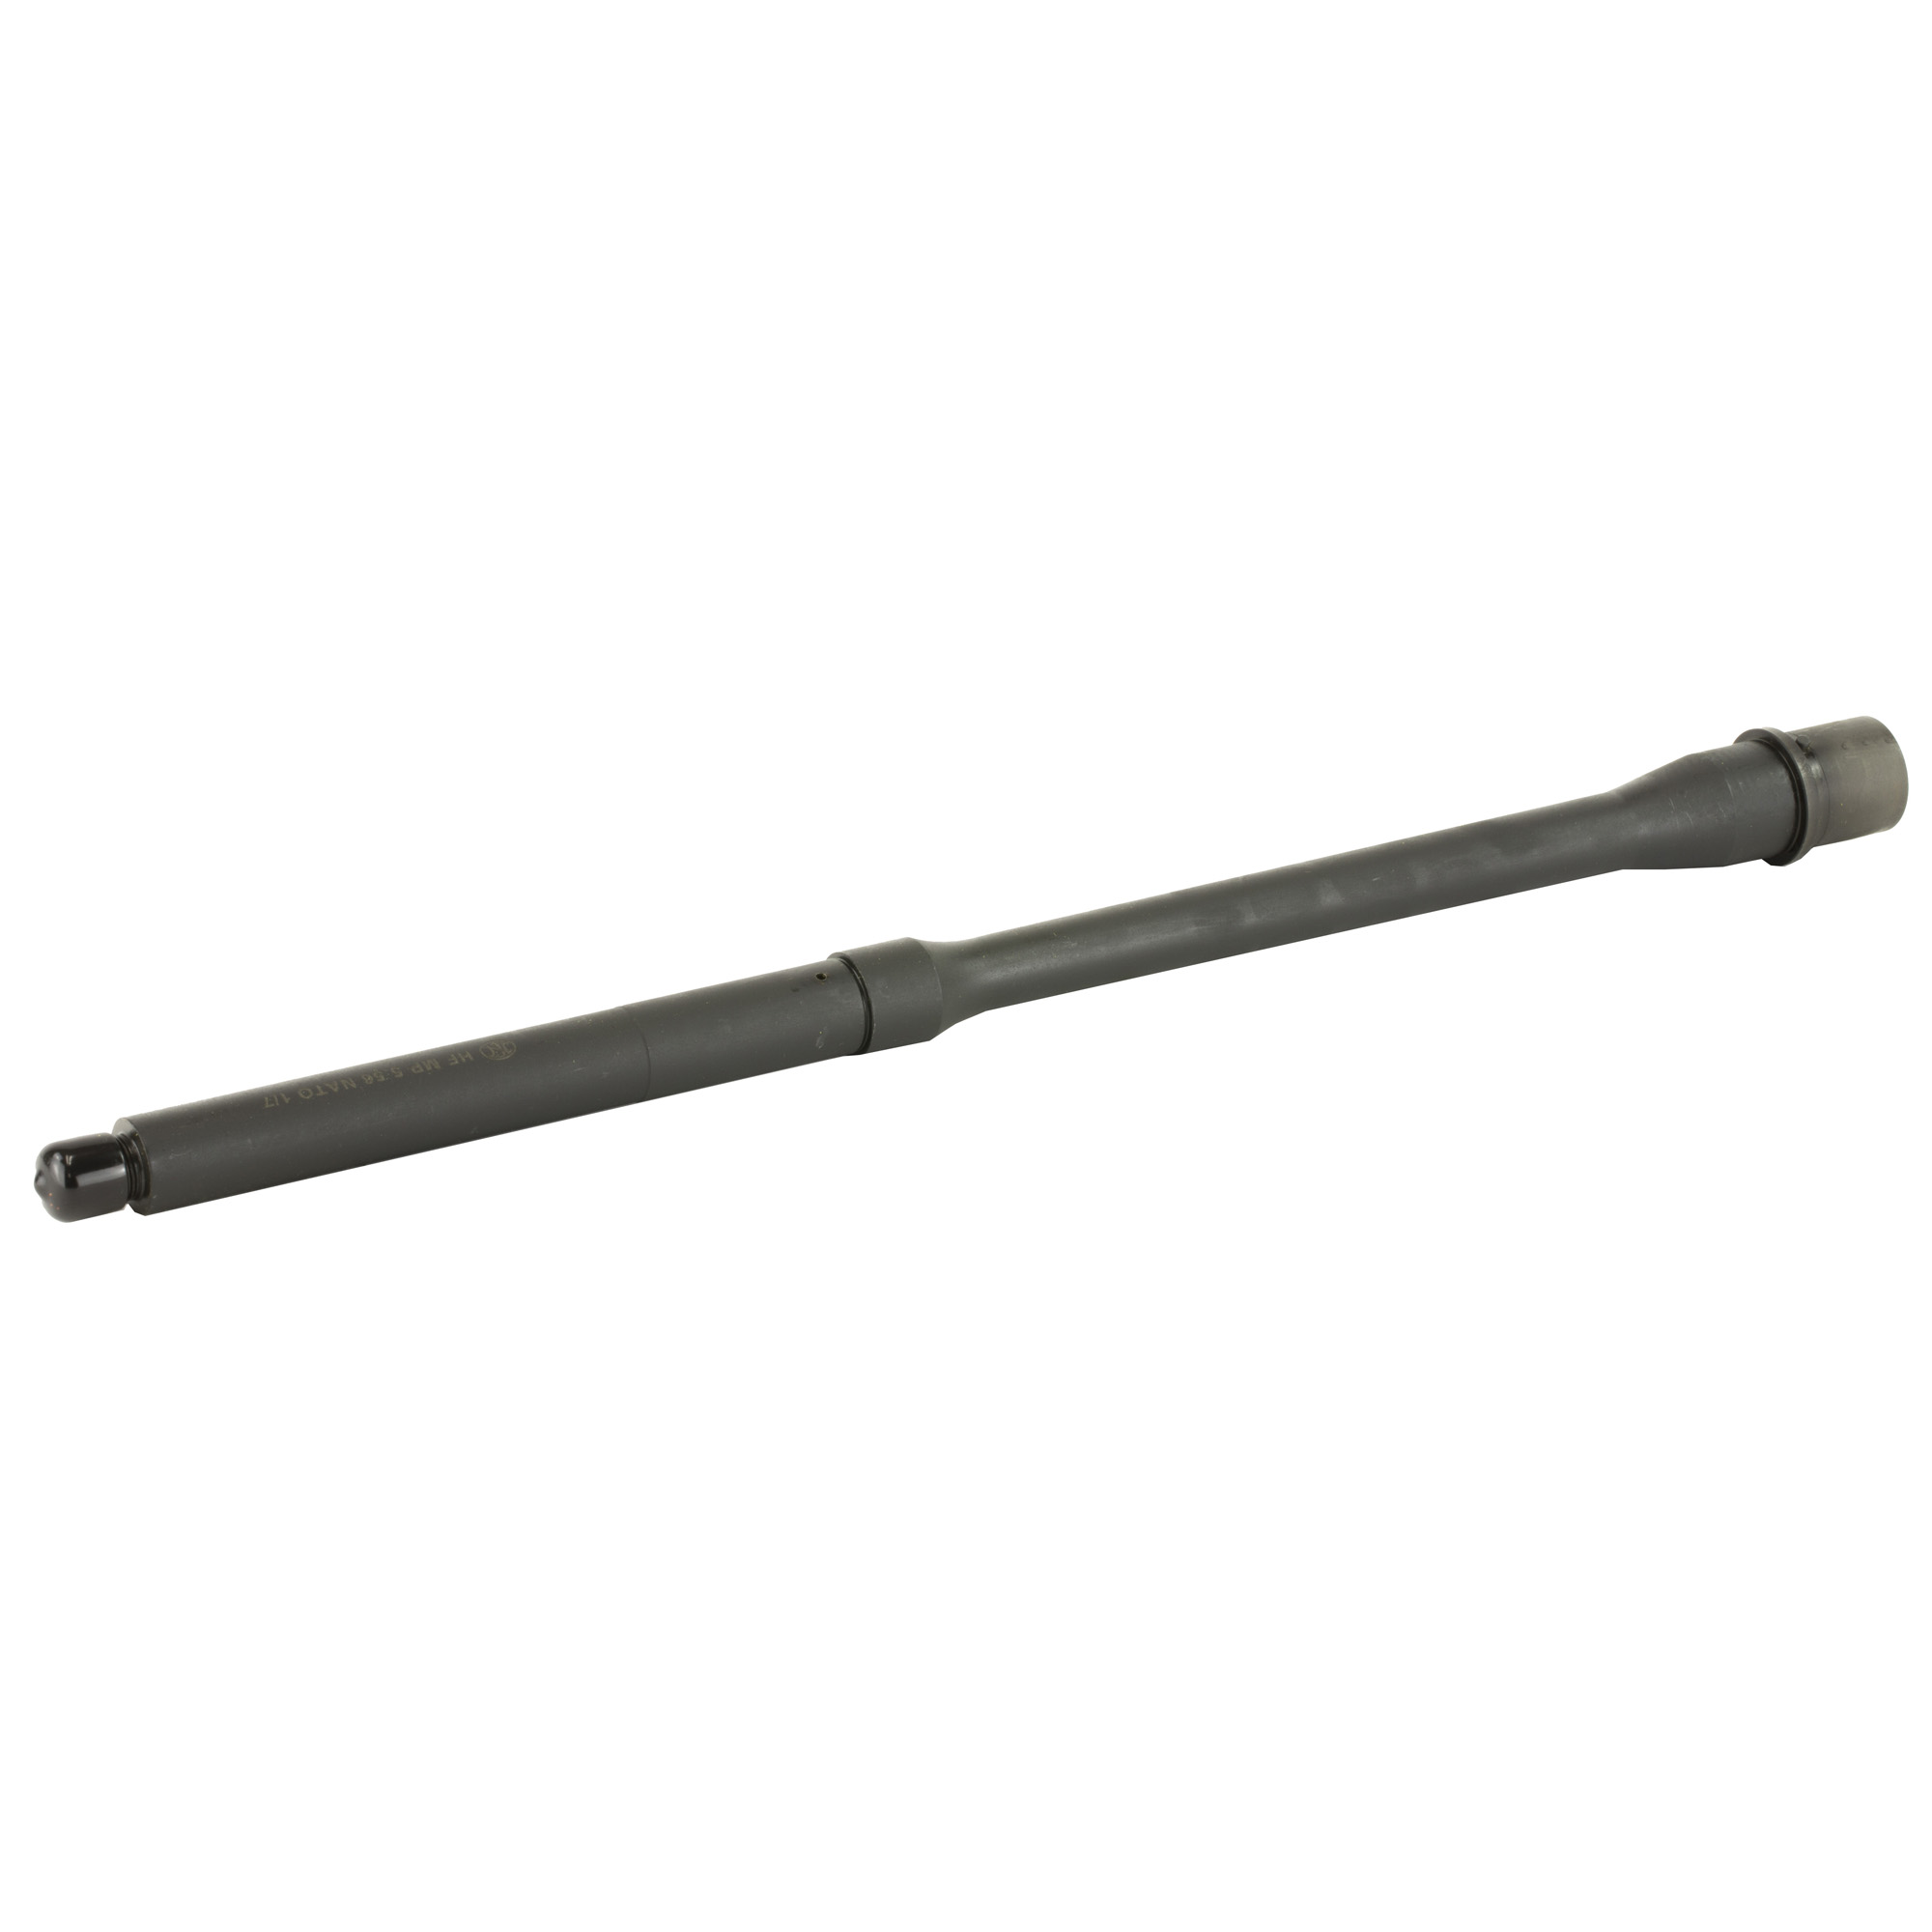 """FN AR15 barrels are hammer forged using the same proprietary high-grade Chrome Moly Vanadium steel used in FN's venerable machinegun barrels produced to handle the punishment of sustained fully automatic fire. After forging"""" each barrel is Magnetic Particle tested to ensure that it is free of micro stresses or flaws"""" resulting in consistency and quality in every barrel shipped from the factory. The bore and chamber are chrome lined to help resist corrosion and provide resistance to heat erosion which greatly improves barrel life and reliable chambering/extraction. The M4 style feed ramps and barrel extension provide consistent feeding and the matte black Manganese Phosphate finish resists external corrosion and oxidation."""